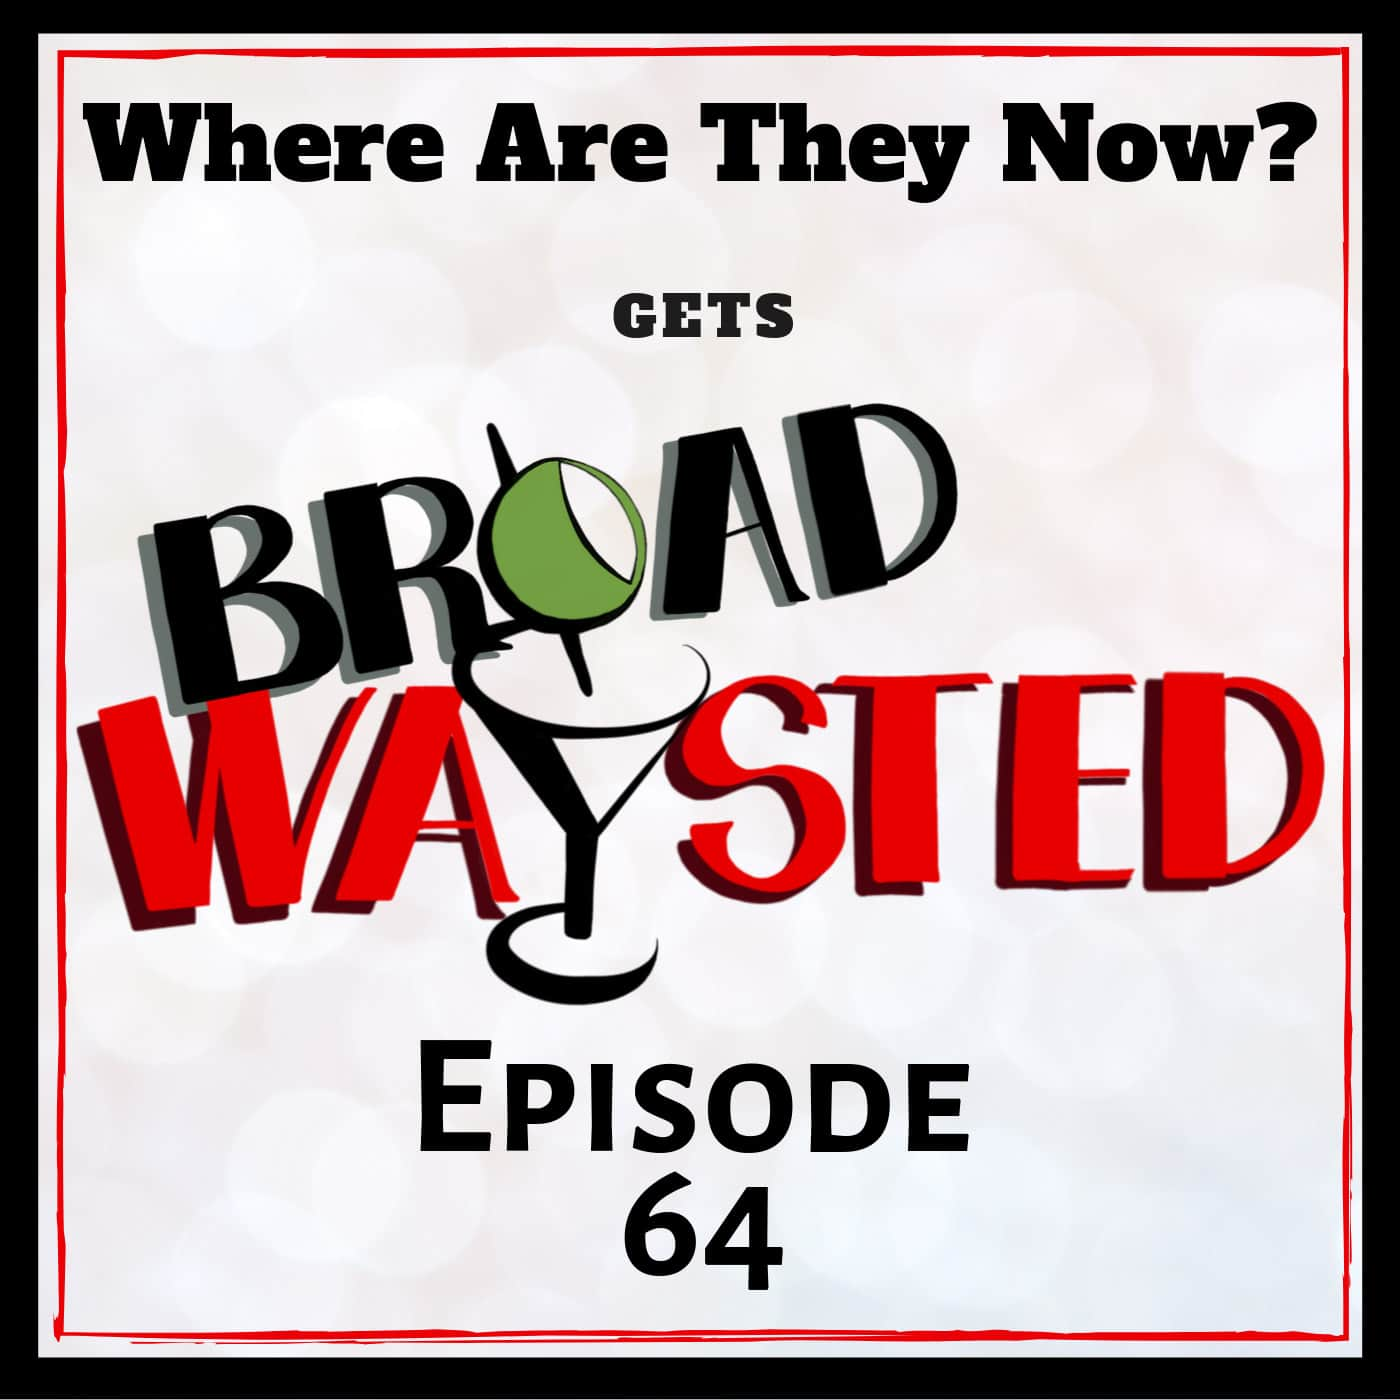 Broadwaysted Ep 64 Where are they now_